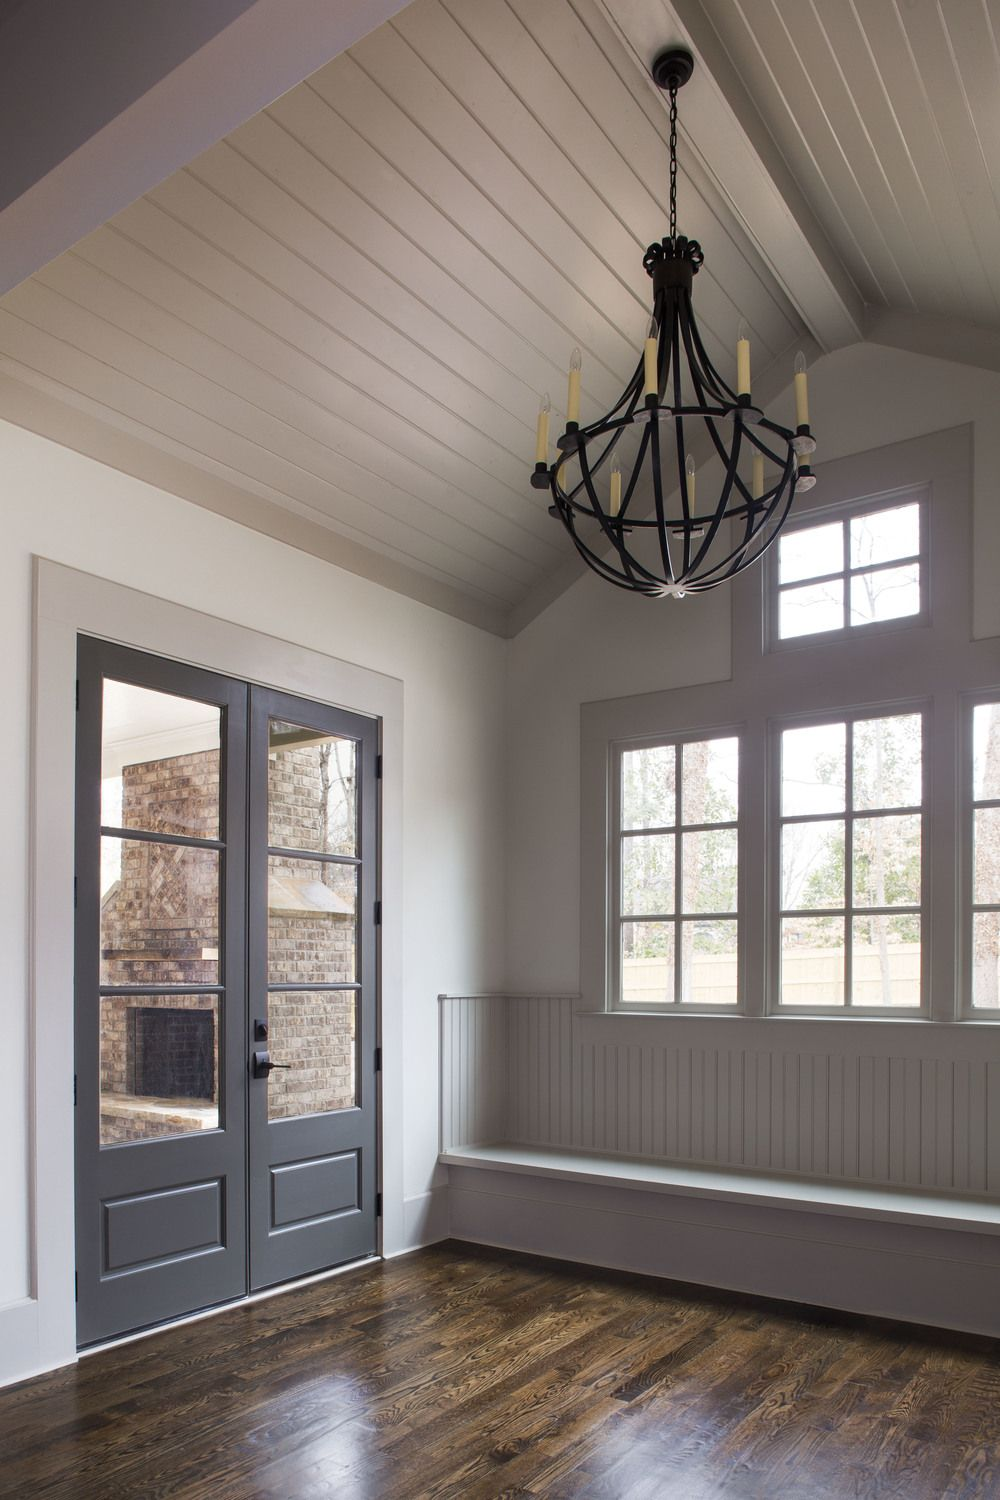 The 25 best ceiling finishes ideas on pinterest ceiling for Best paint finish for ceilings